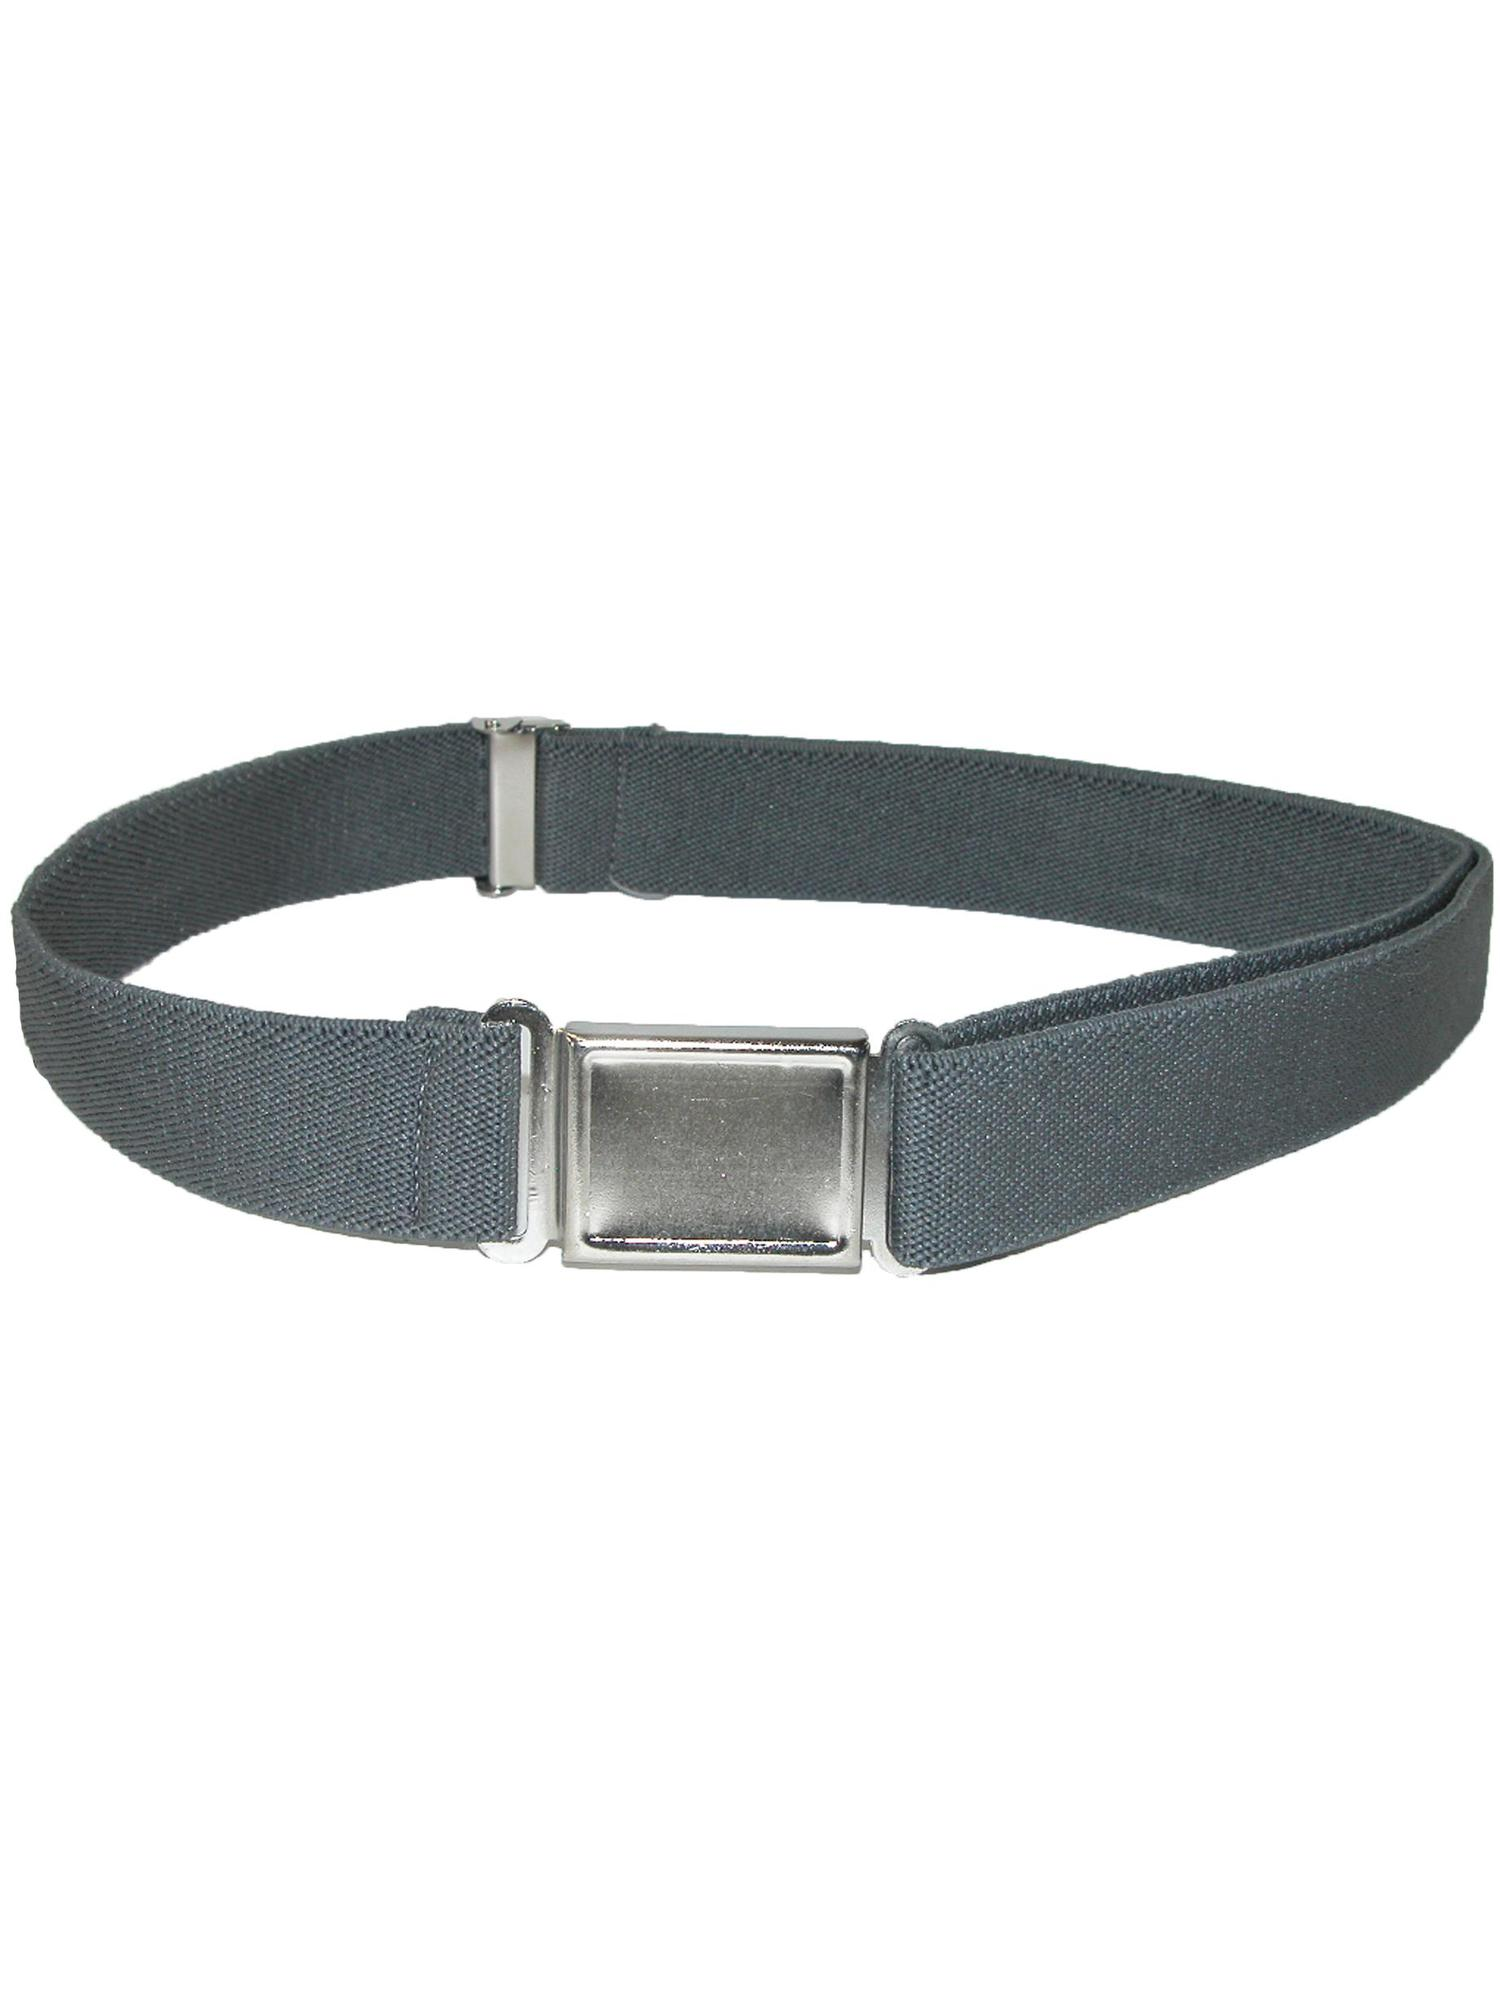 Size one size Kid's Elastic 1 Inch Adjustable Belt with Magnetic Buckle